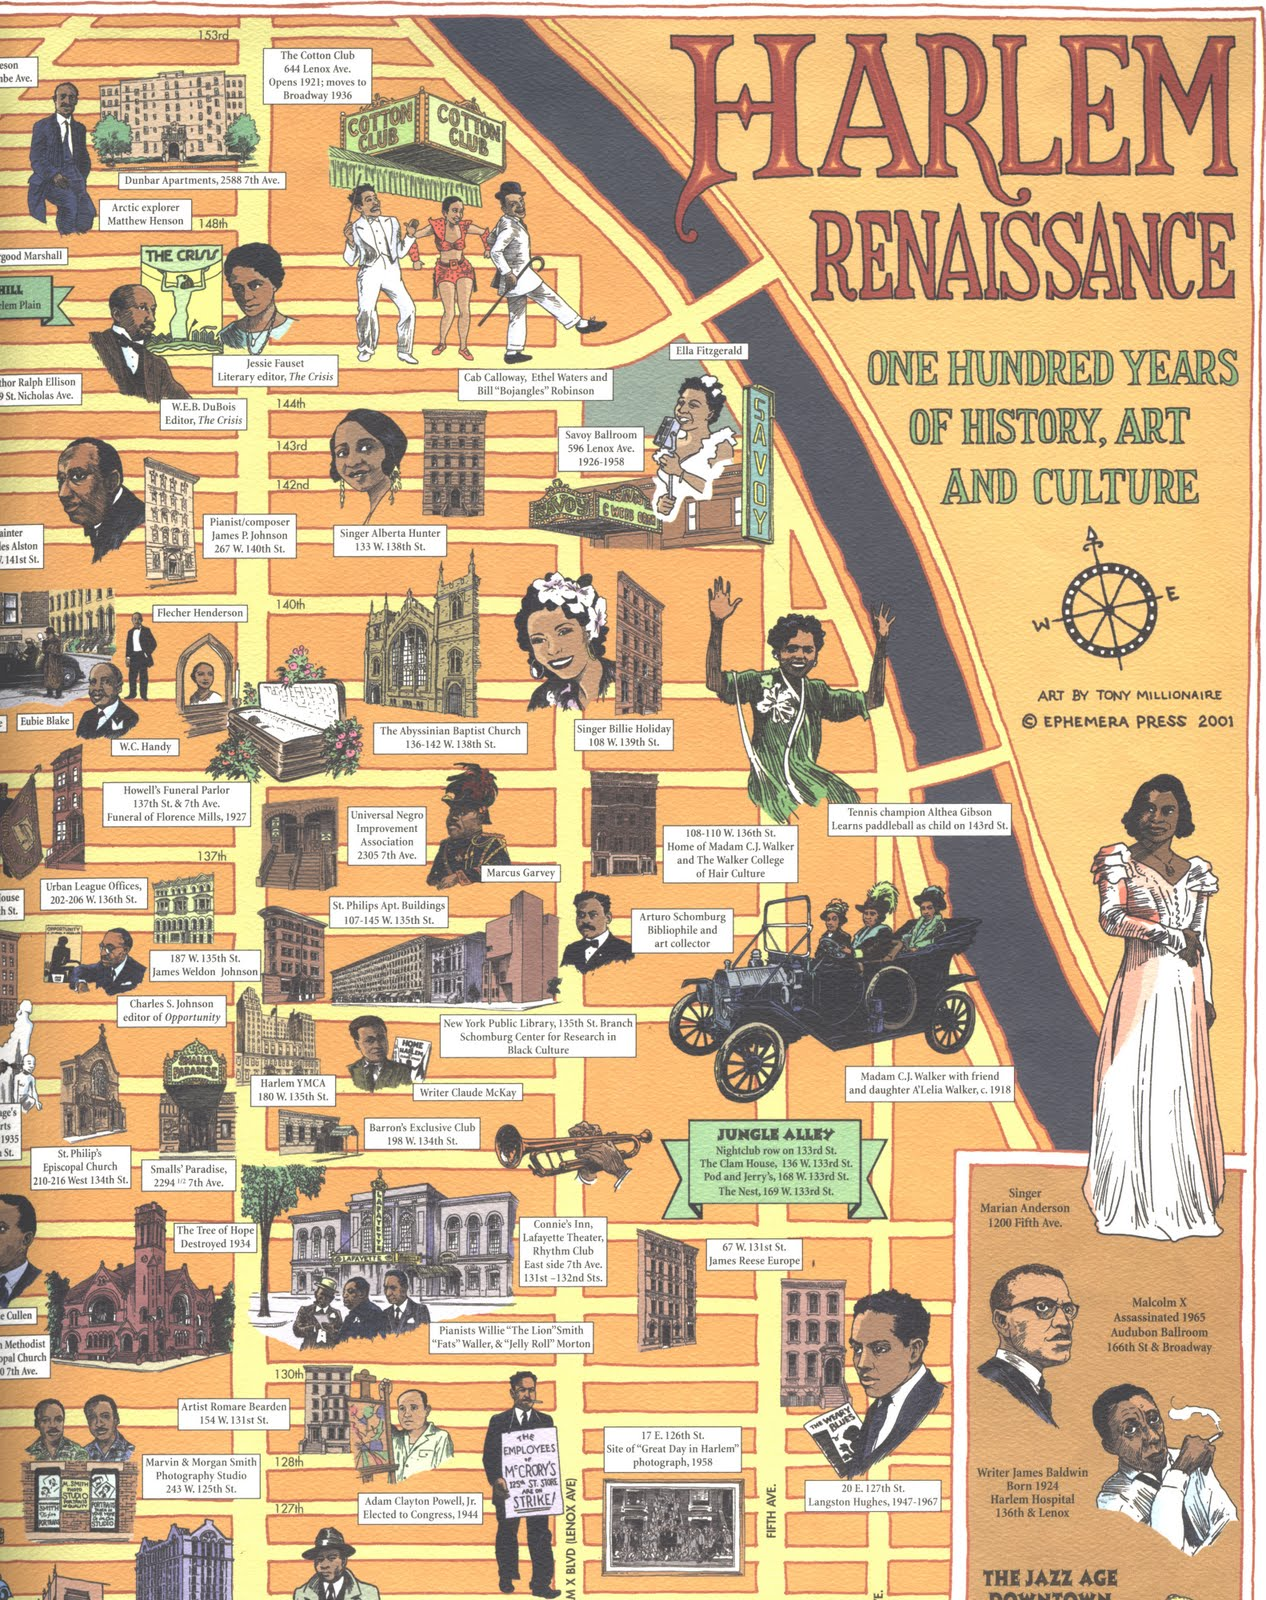 """the history of harlem renaissance This video segment from a walk through harlem takes a look at the harlem renaissance, a large social and cultural movement of the early 1900s -1930s stemming from the """"great migration of african americans from the rural south to american history, african american history, literature, harlem renaissance, poets."""